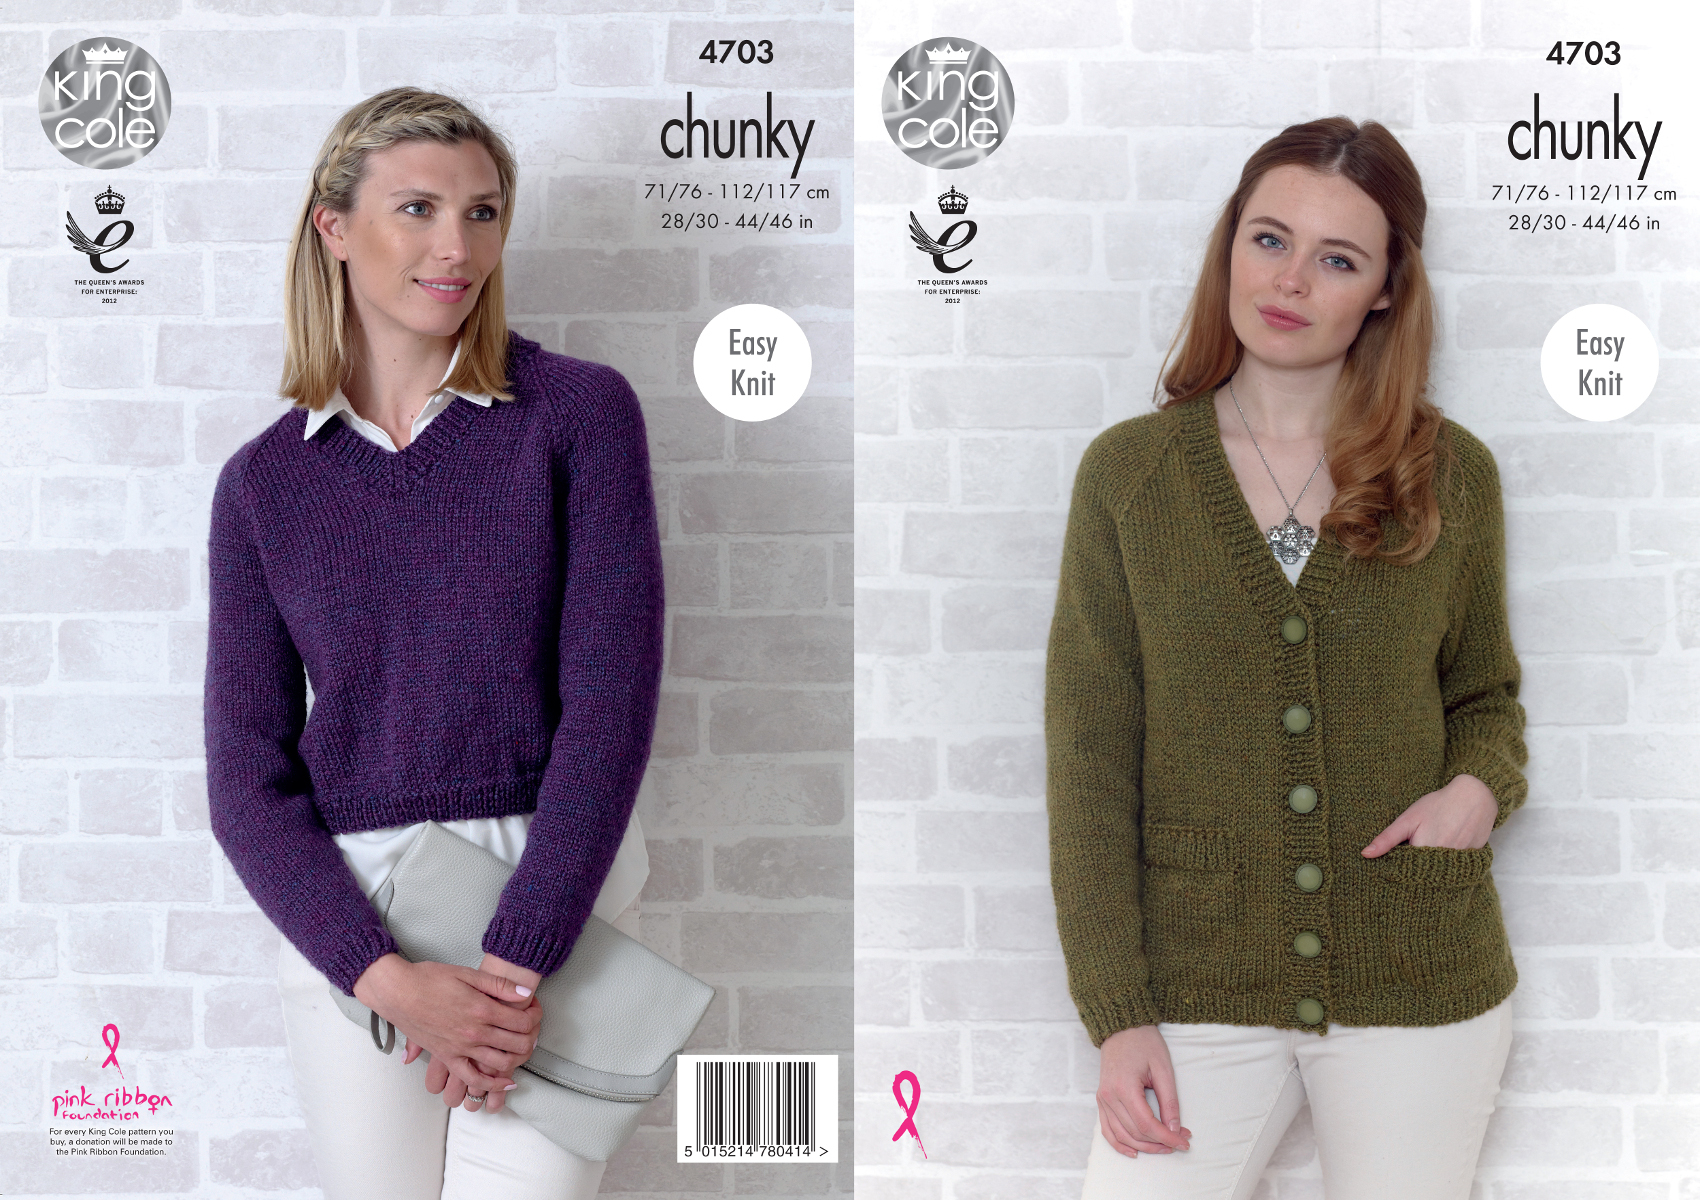 Easy Jumper Knitting Pattern Details About Easy Knit Raglan Jumper Cardigan Ladies Knitting Pattern King Cole Chunky 4703